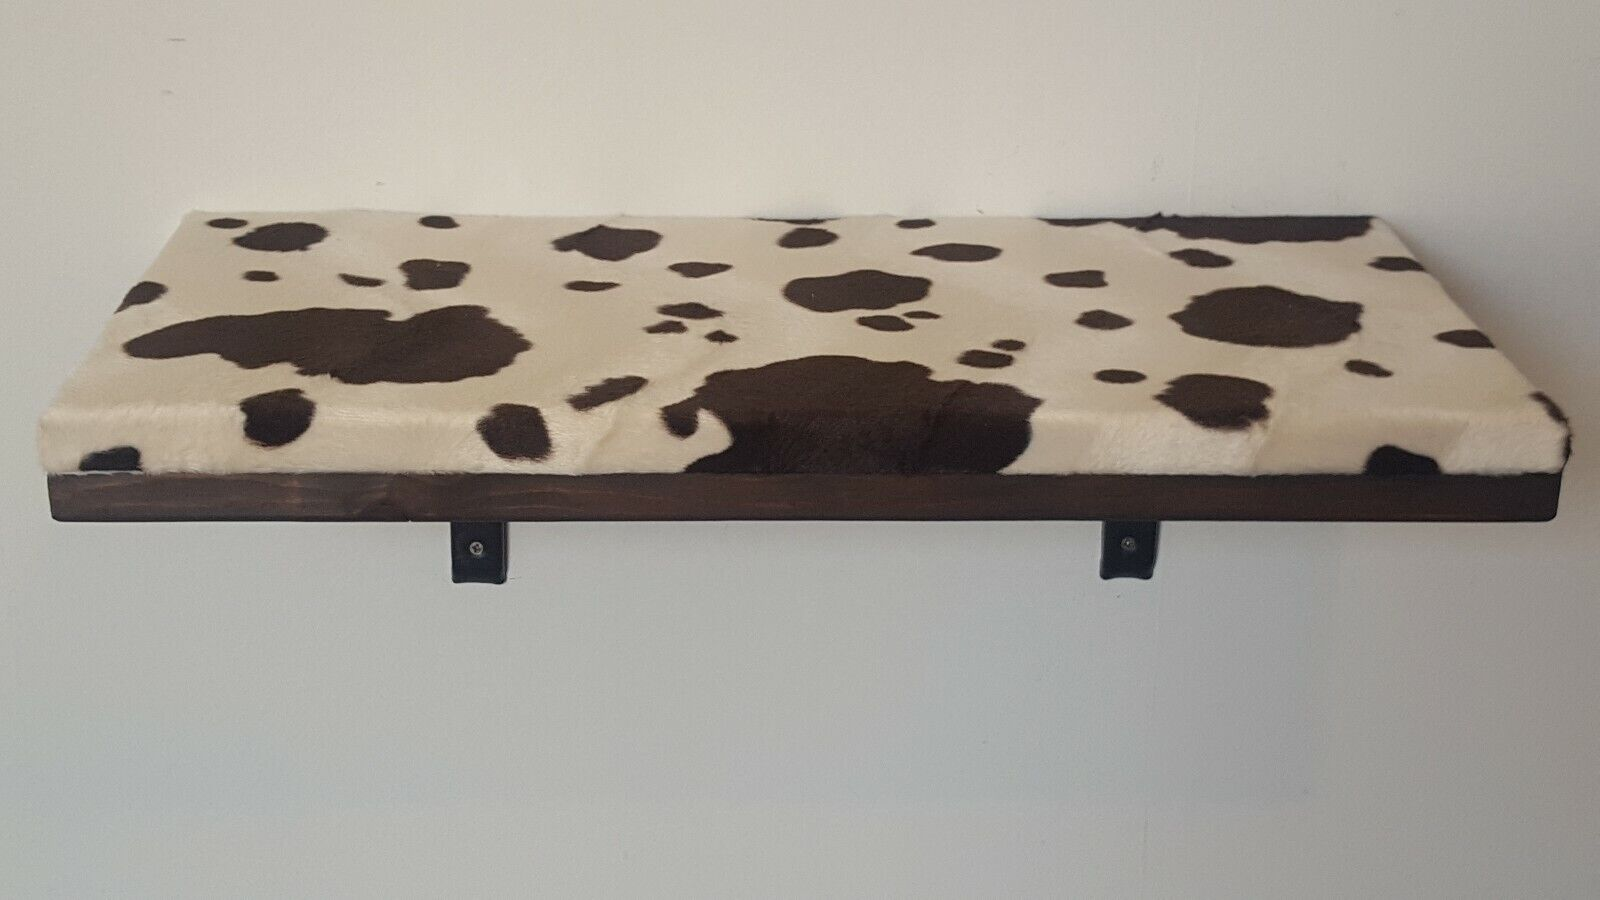 GRANDE STAMPA MUCCA TESSUTO CAT Shelf-Pine Wood